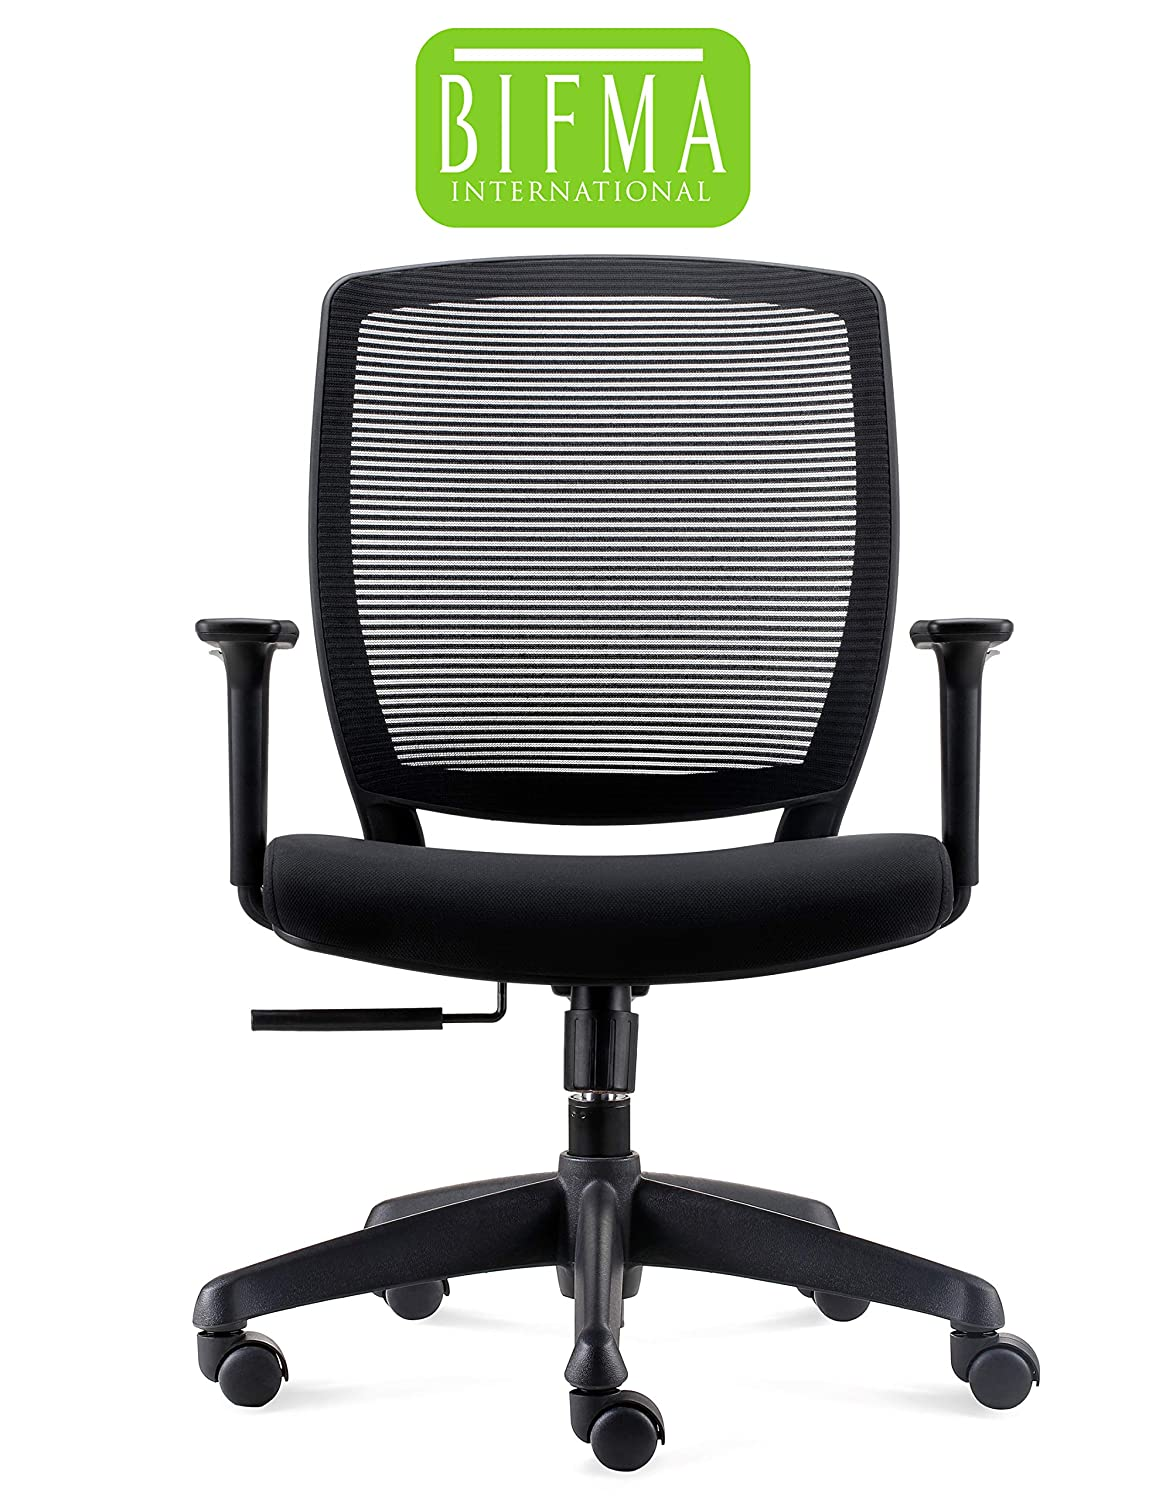 Chairlin Office Chairs Home Office Task Chair Ergonomic Computer Desk Chair Black MF0220B